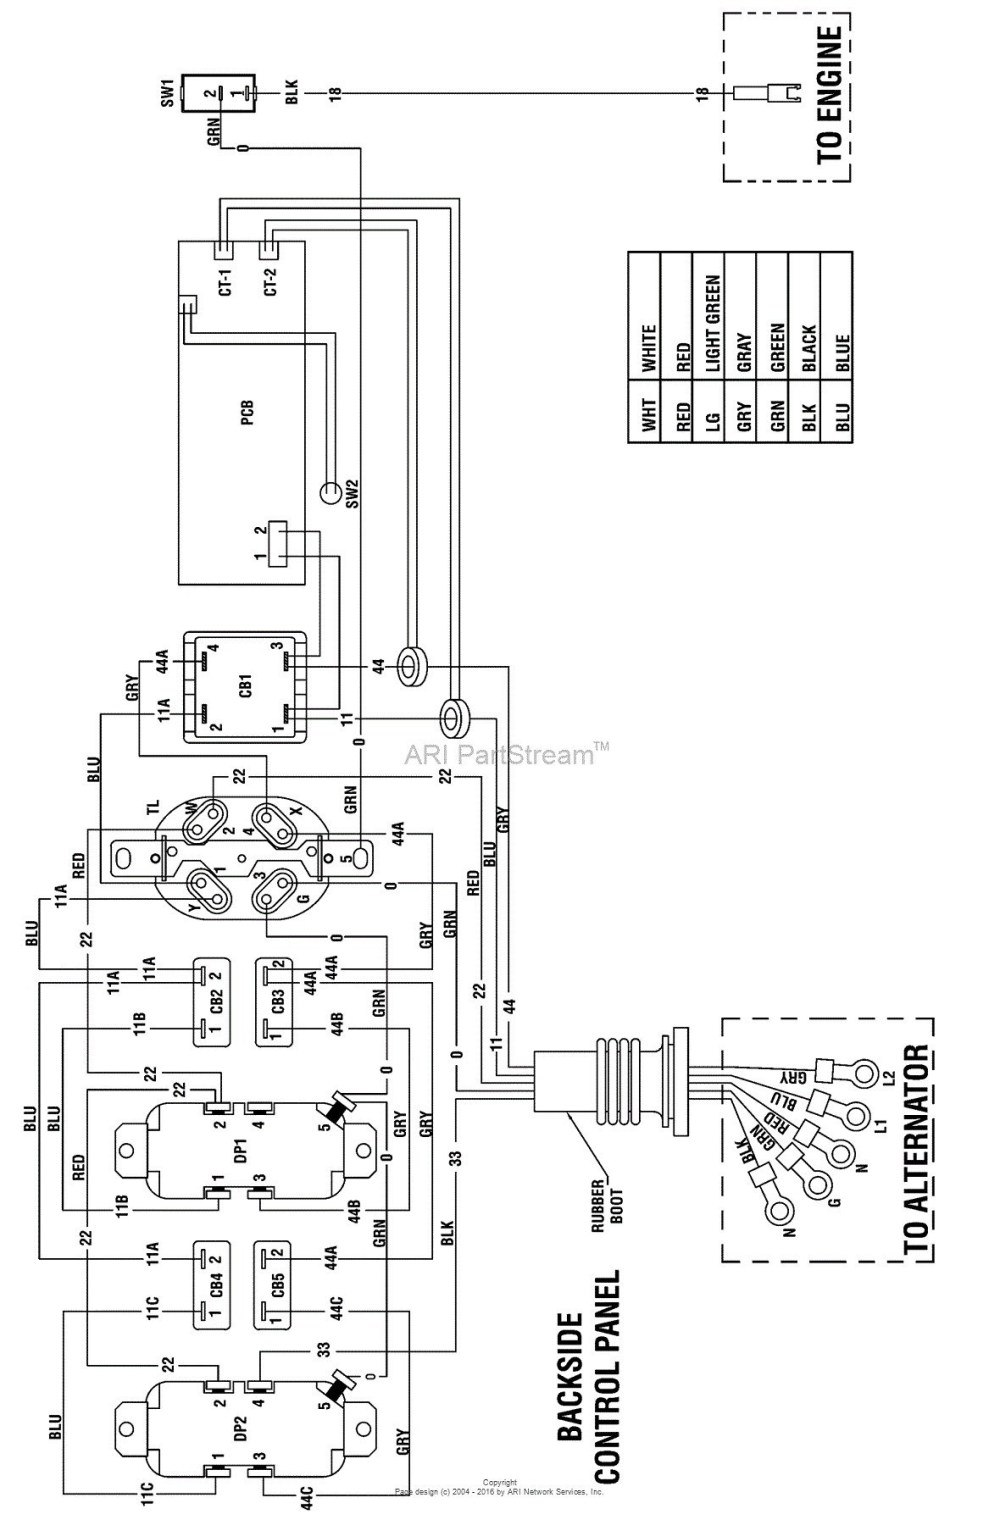 medium resolution of briggs and stratton 190707 ignition wiring diagram wiring diagram het 24 hp briggs and stratton wiring diagram